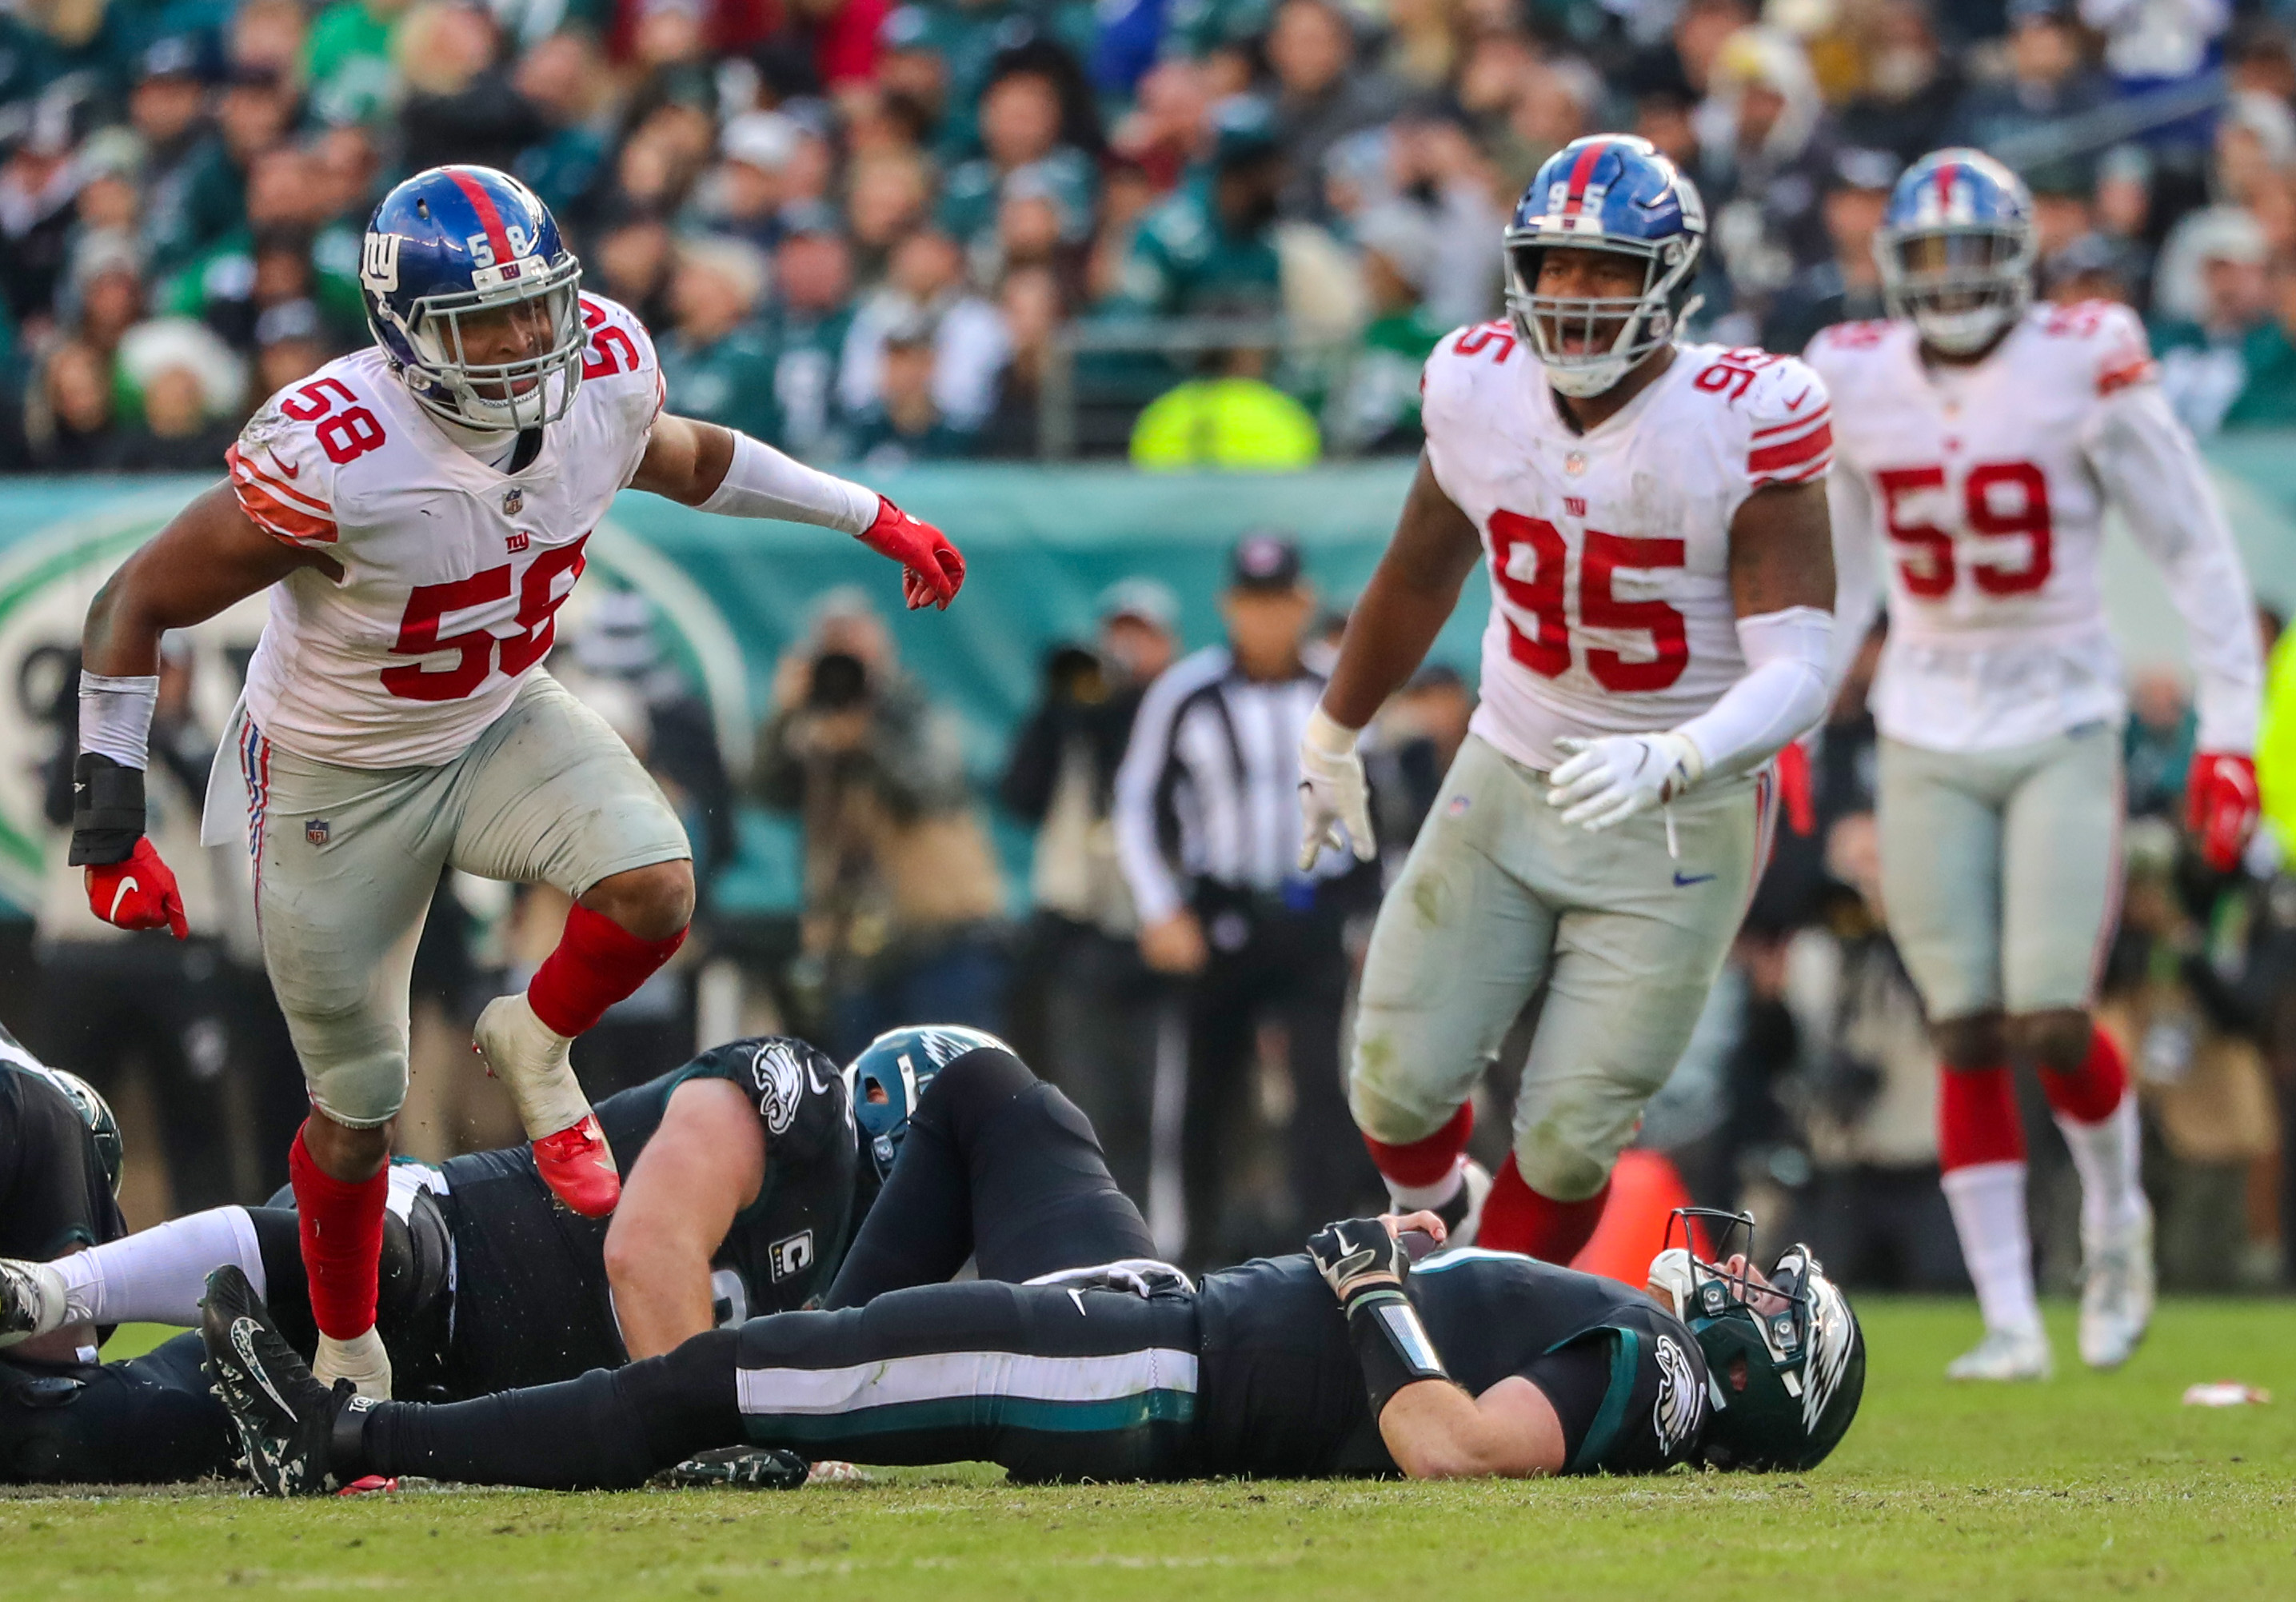 f8226baa742 Giants' 2018 rookies could make or break defense after 2,000 snaps 'you  can' · Michael Thomas